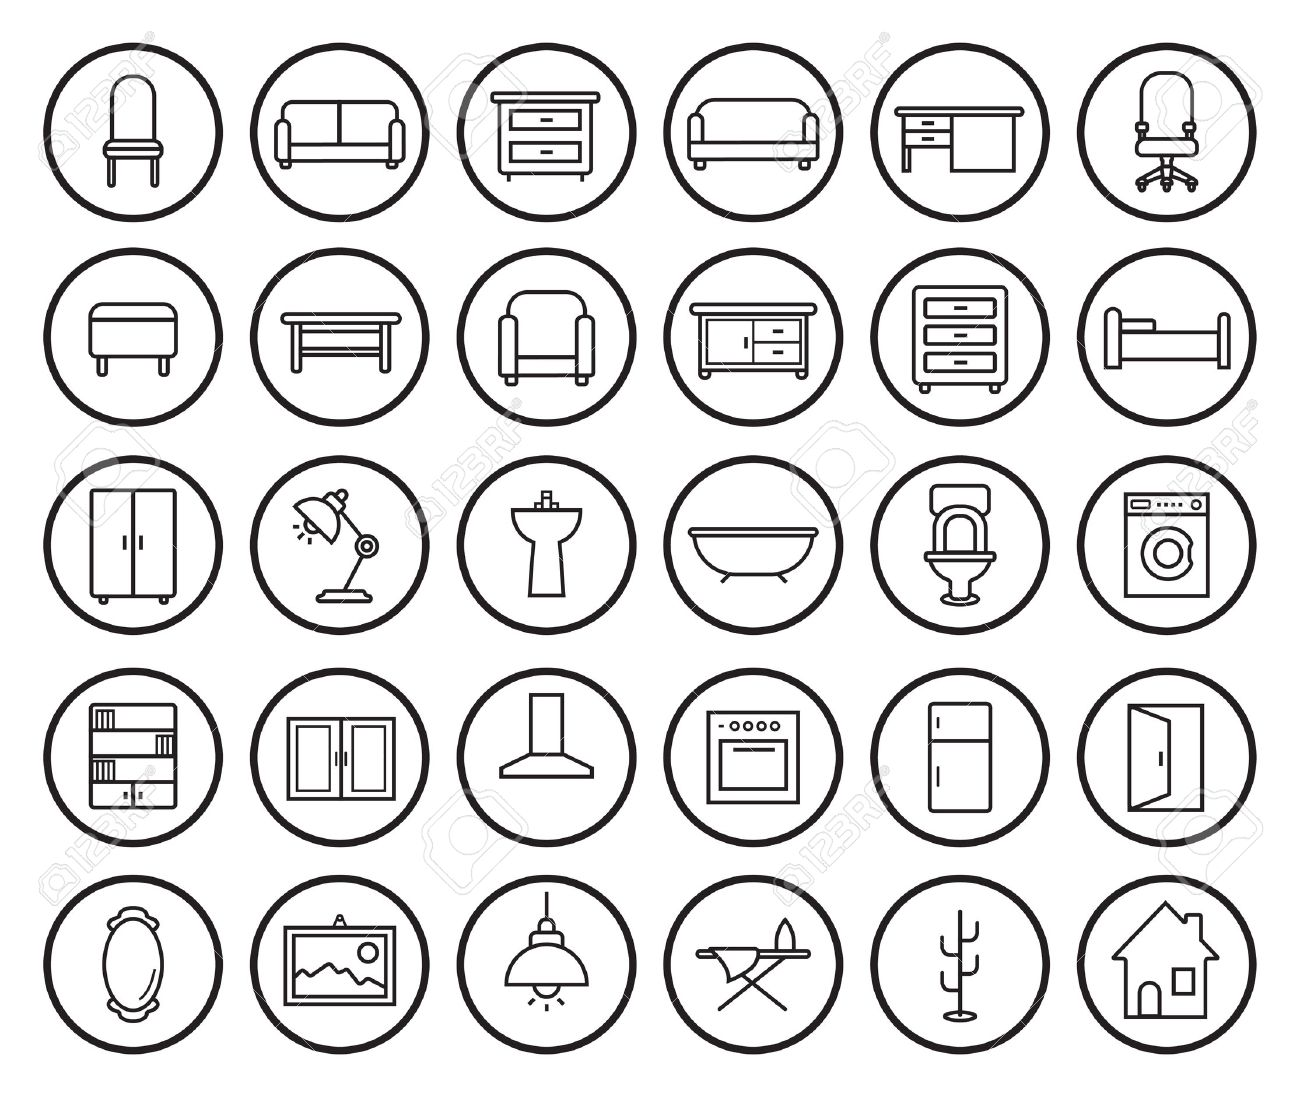 House furniture linear icons set. Vector clip art illustrations isolated on white - 41301941